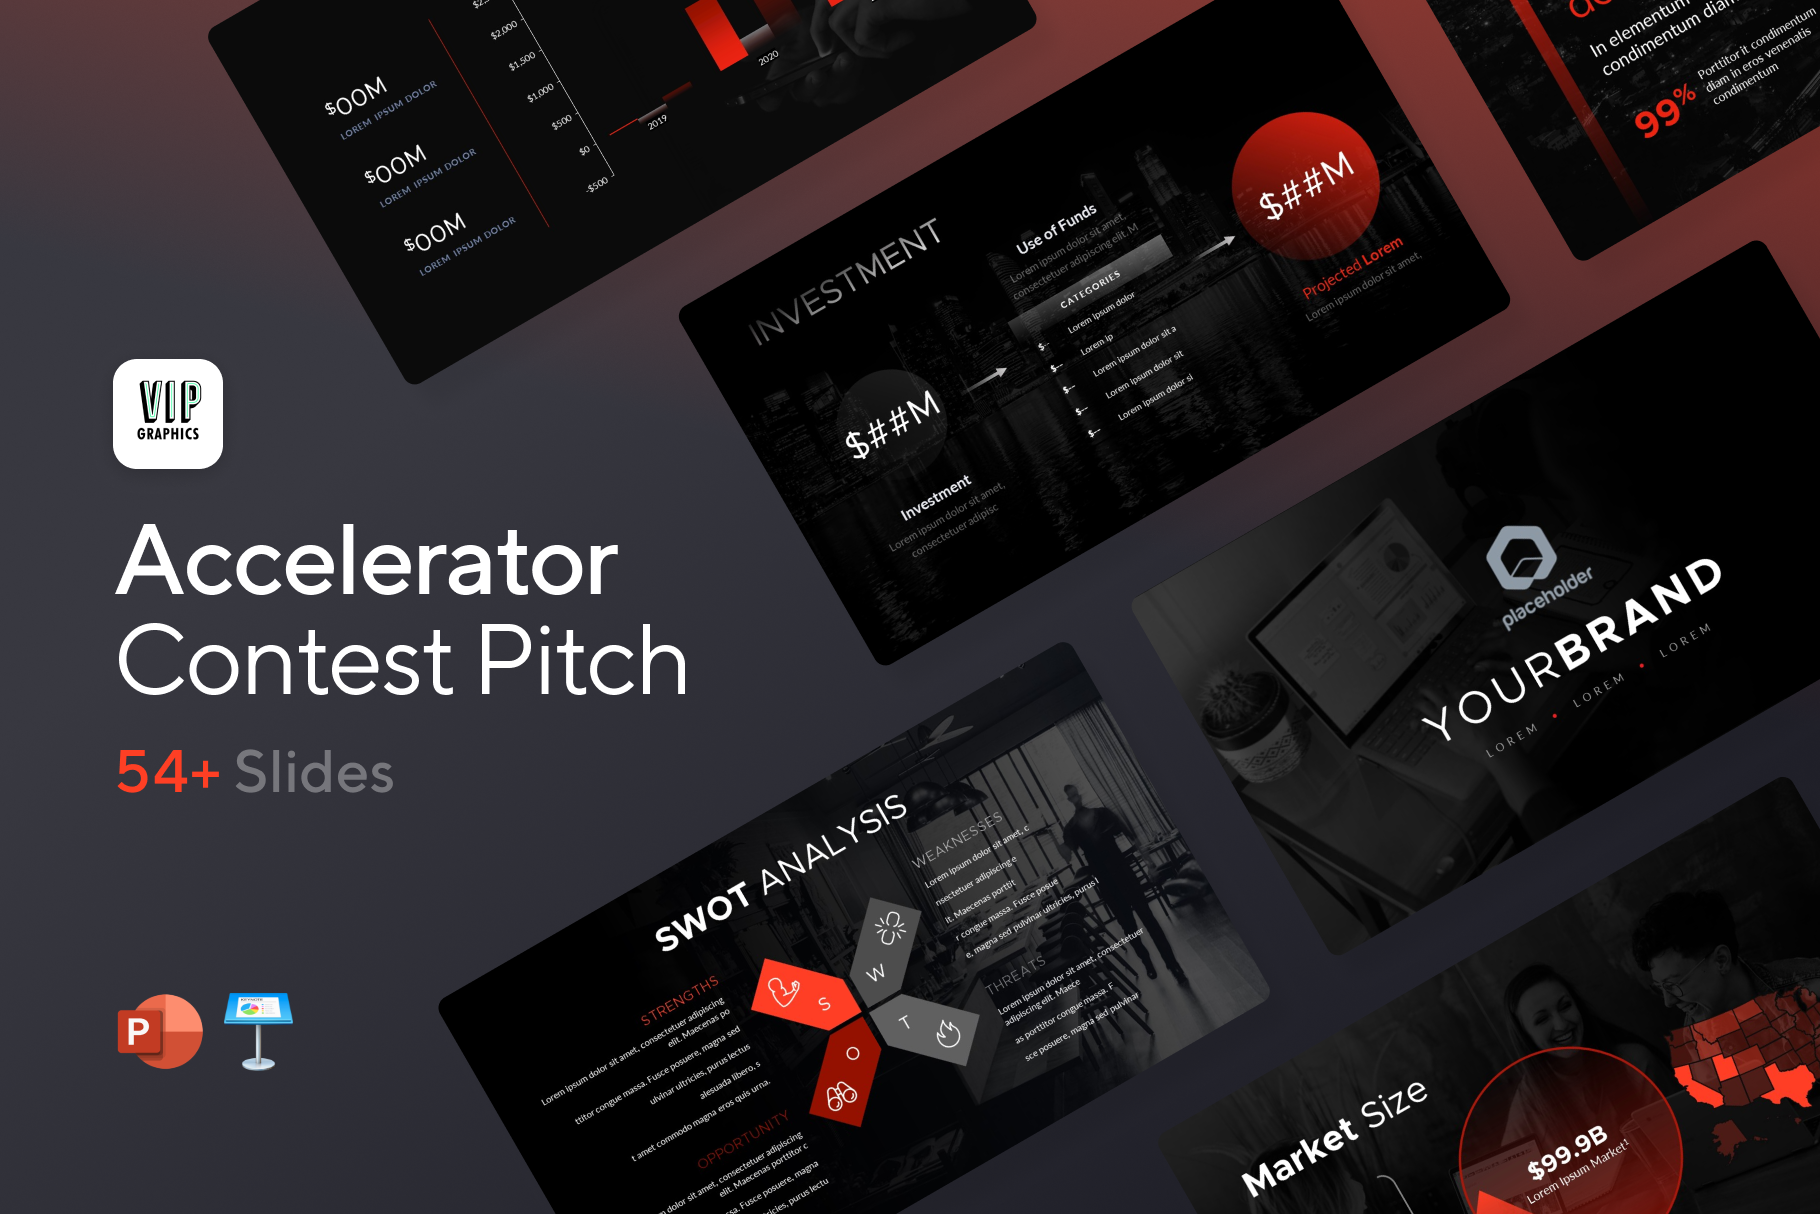 Accelerator Pitch Deck: Powerful slides designed to win pitch contests & accelerators | VIP Graphics